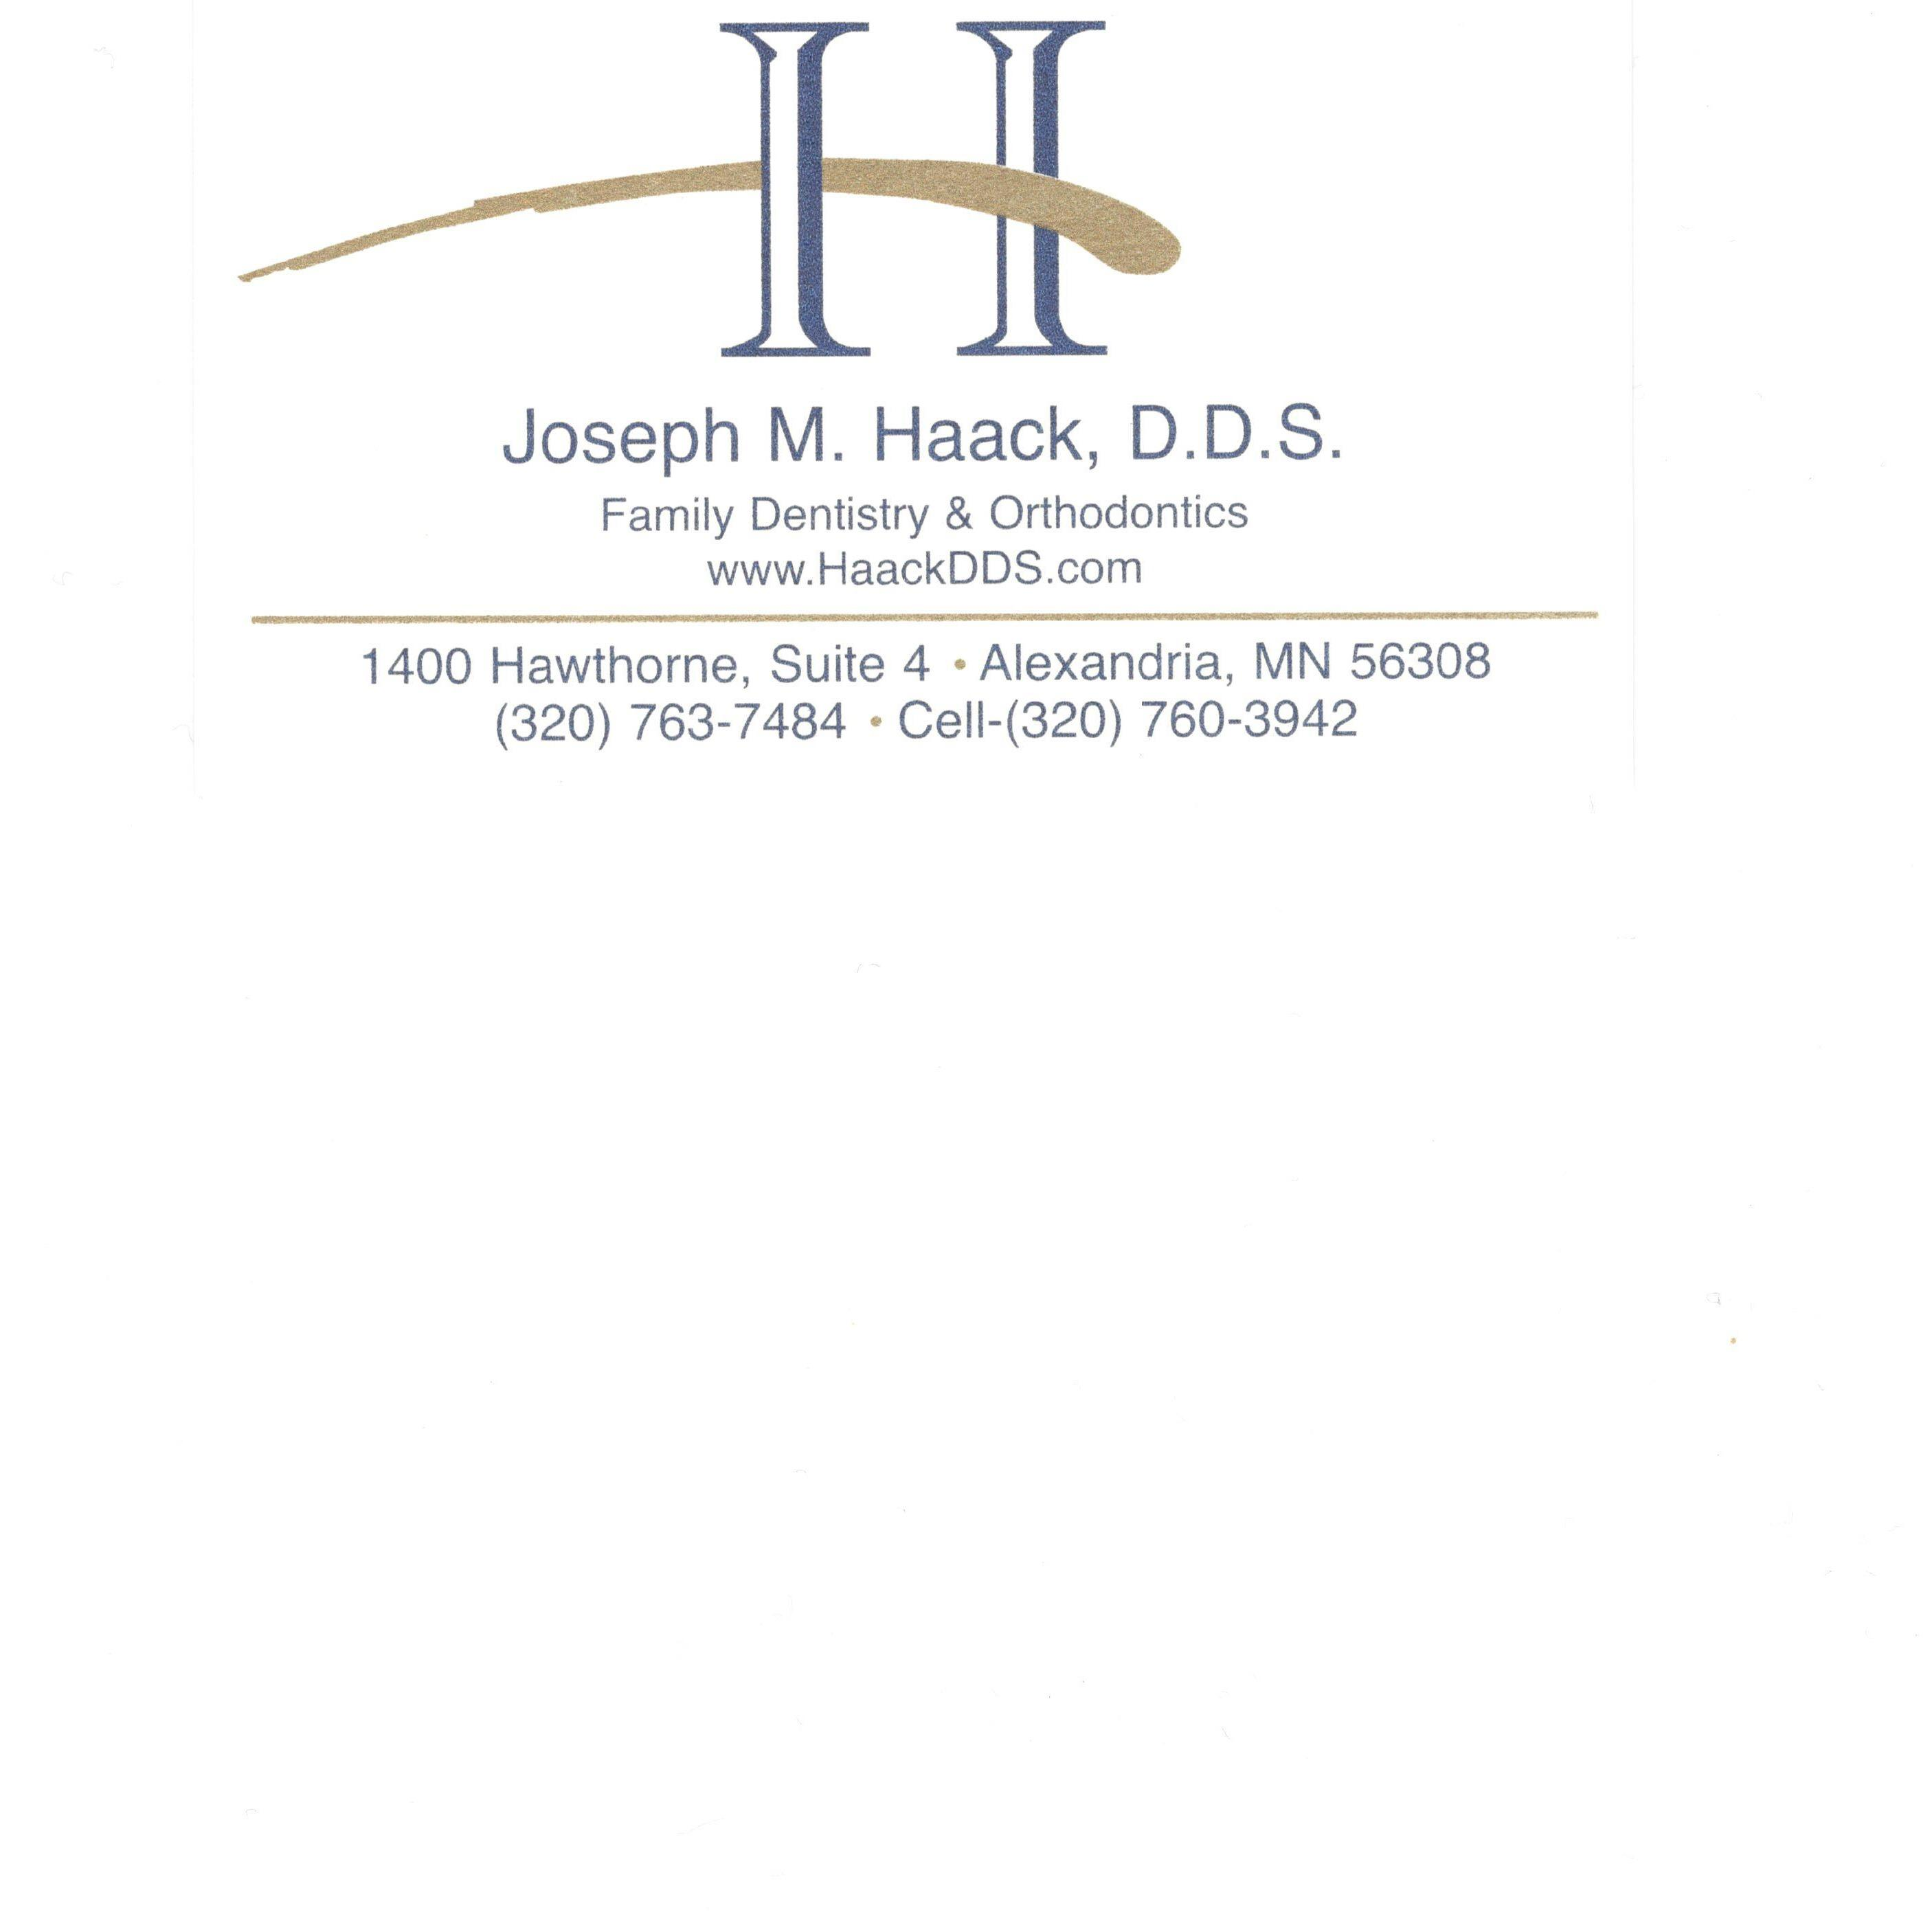 Joseph M. Haack DDS - Family Dentistry and Orthodontics